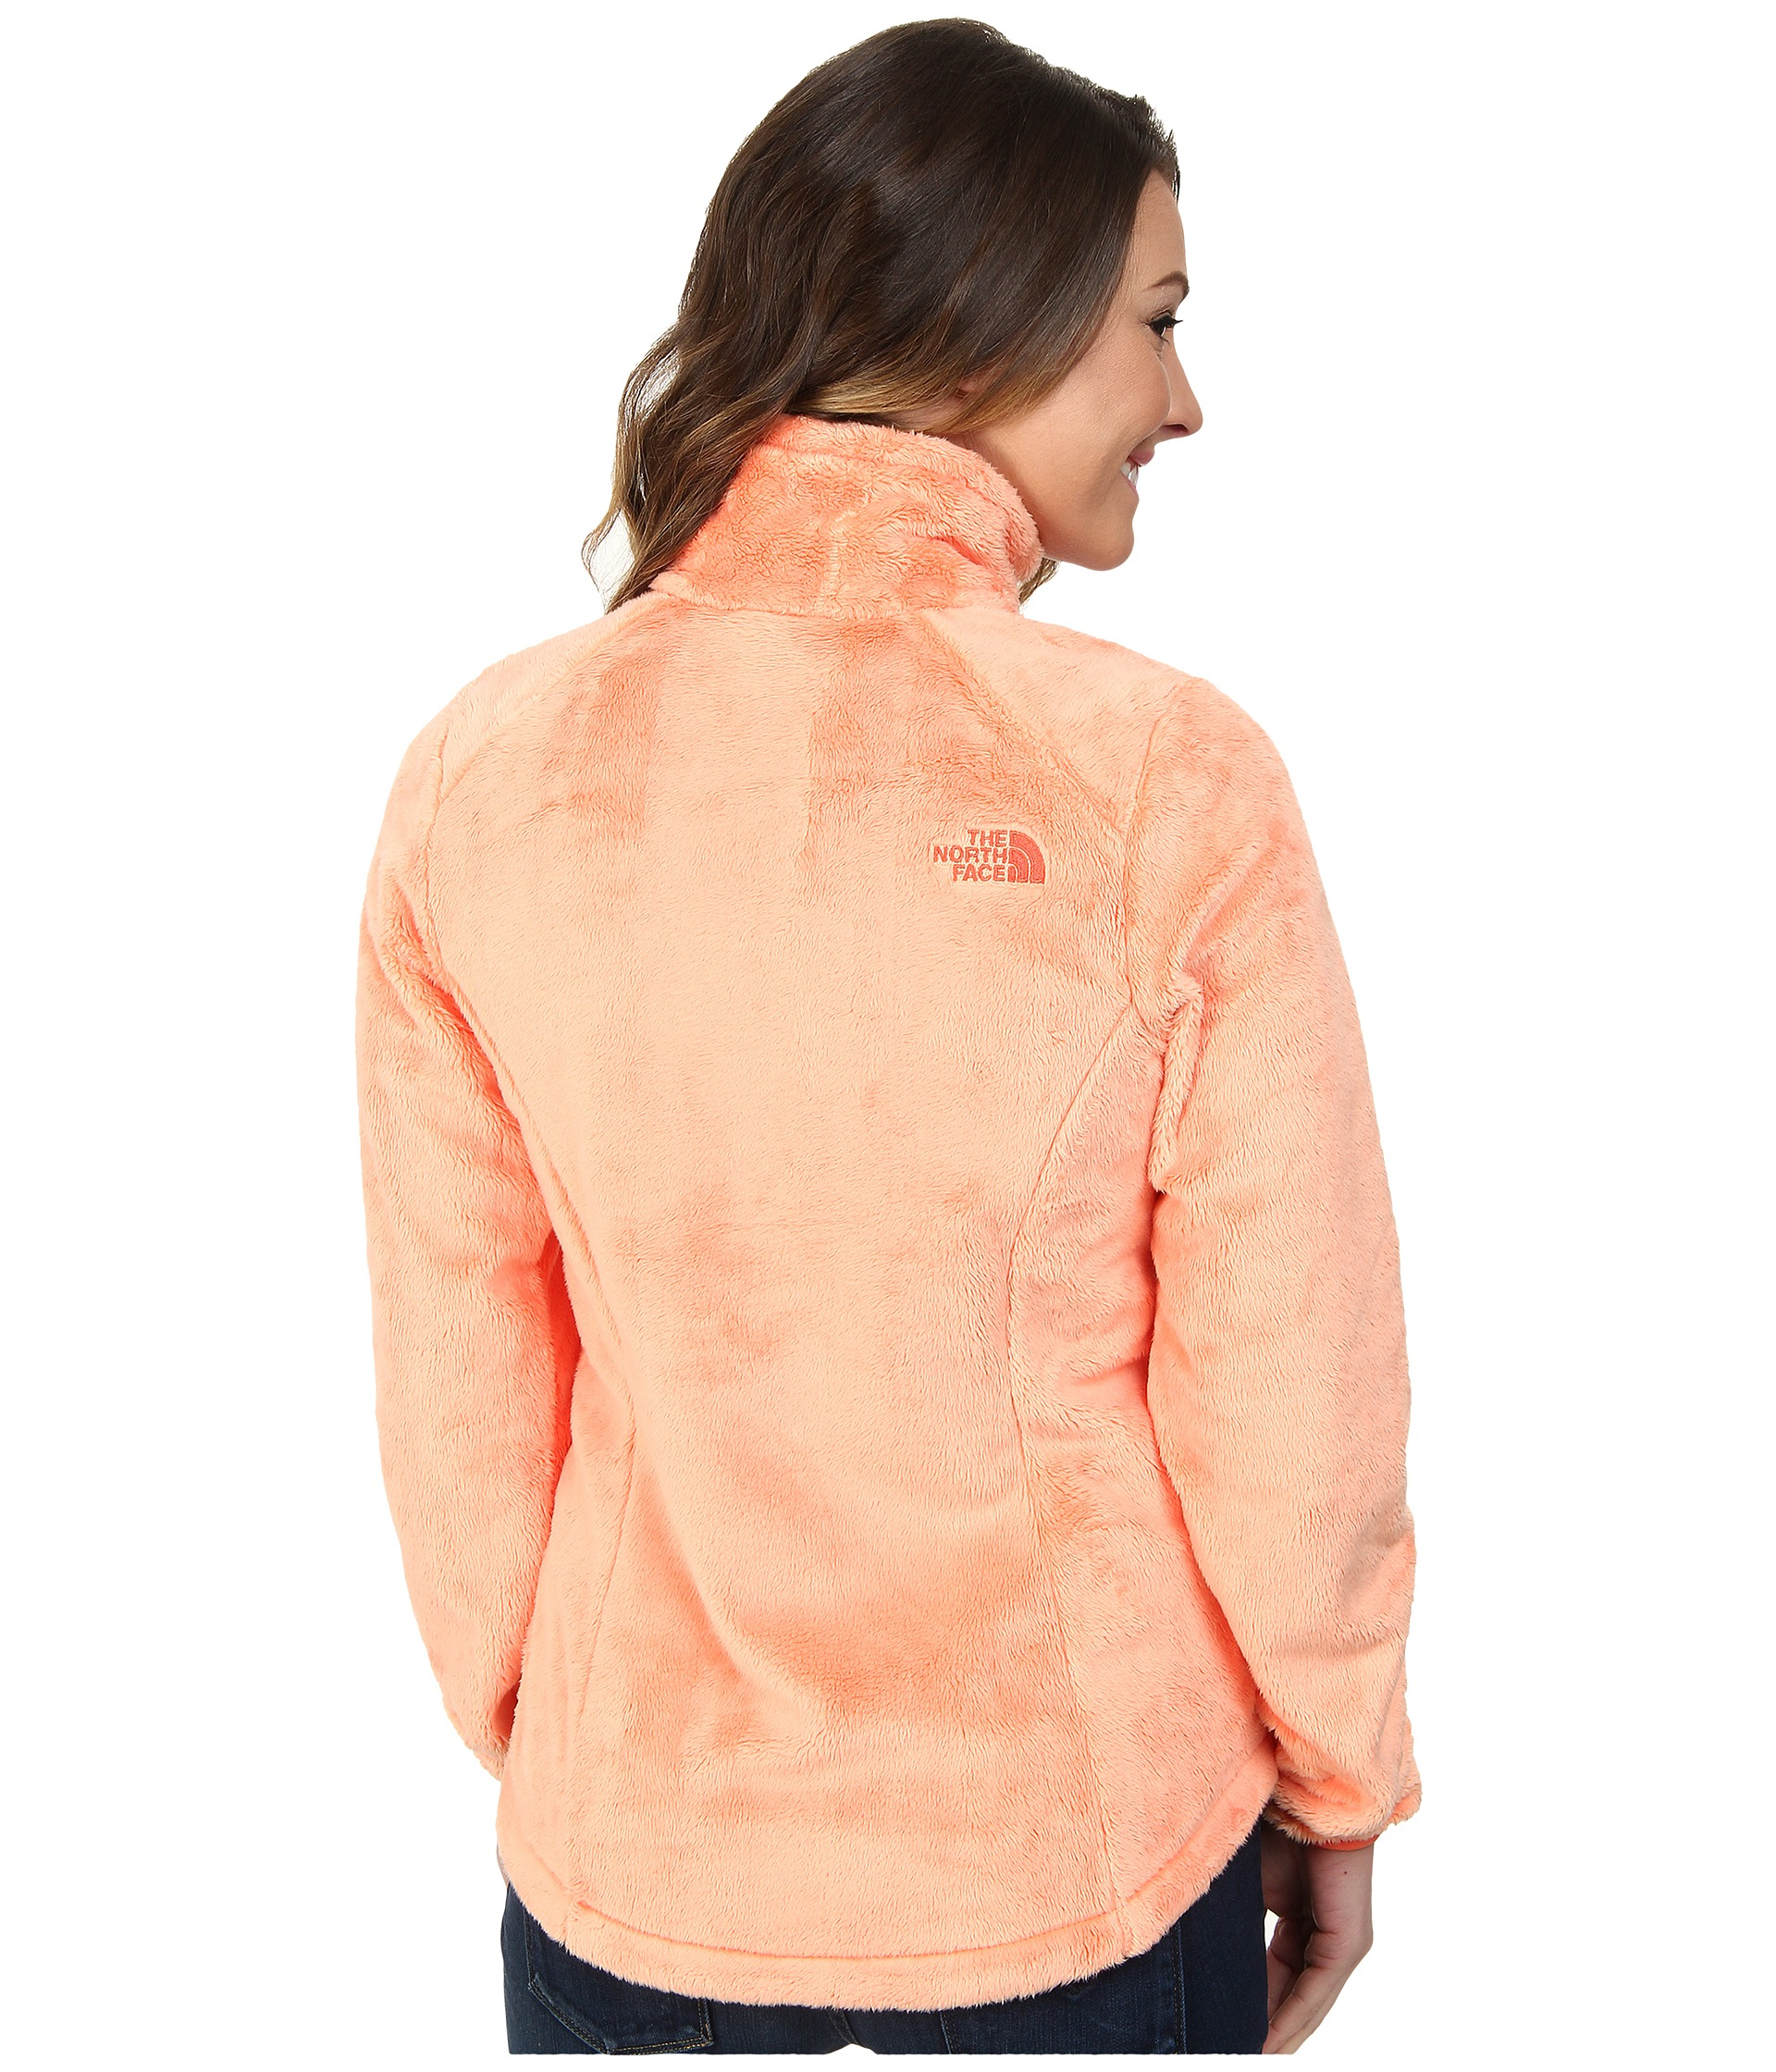 The North Face Womens Osito 2 Fleece Jacket Lyst - The North Face Osito 2  Jacket in Orange ... 99eeccfe0